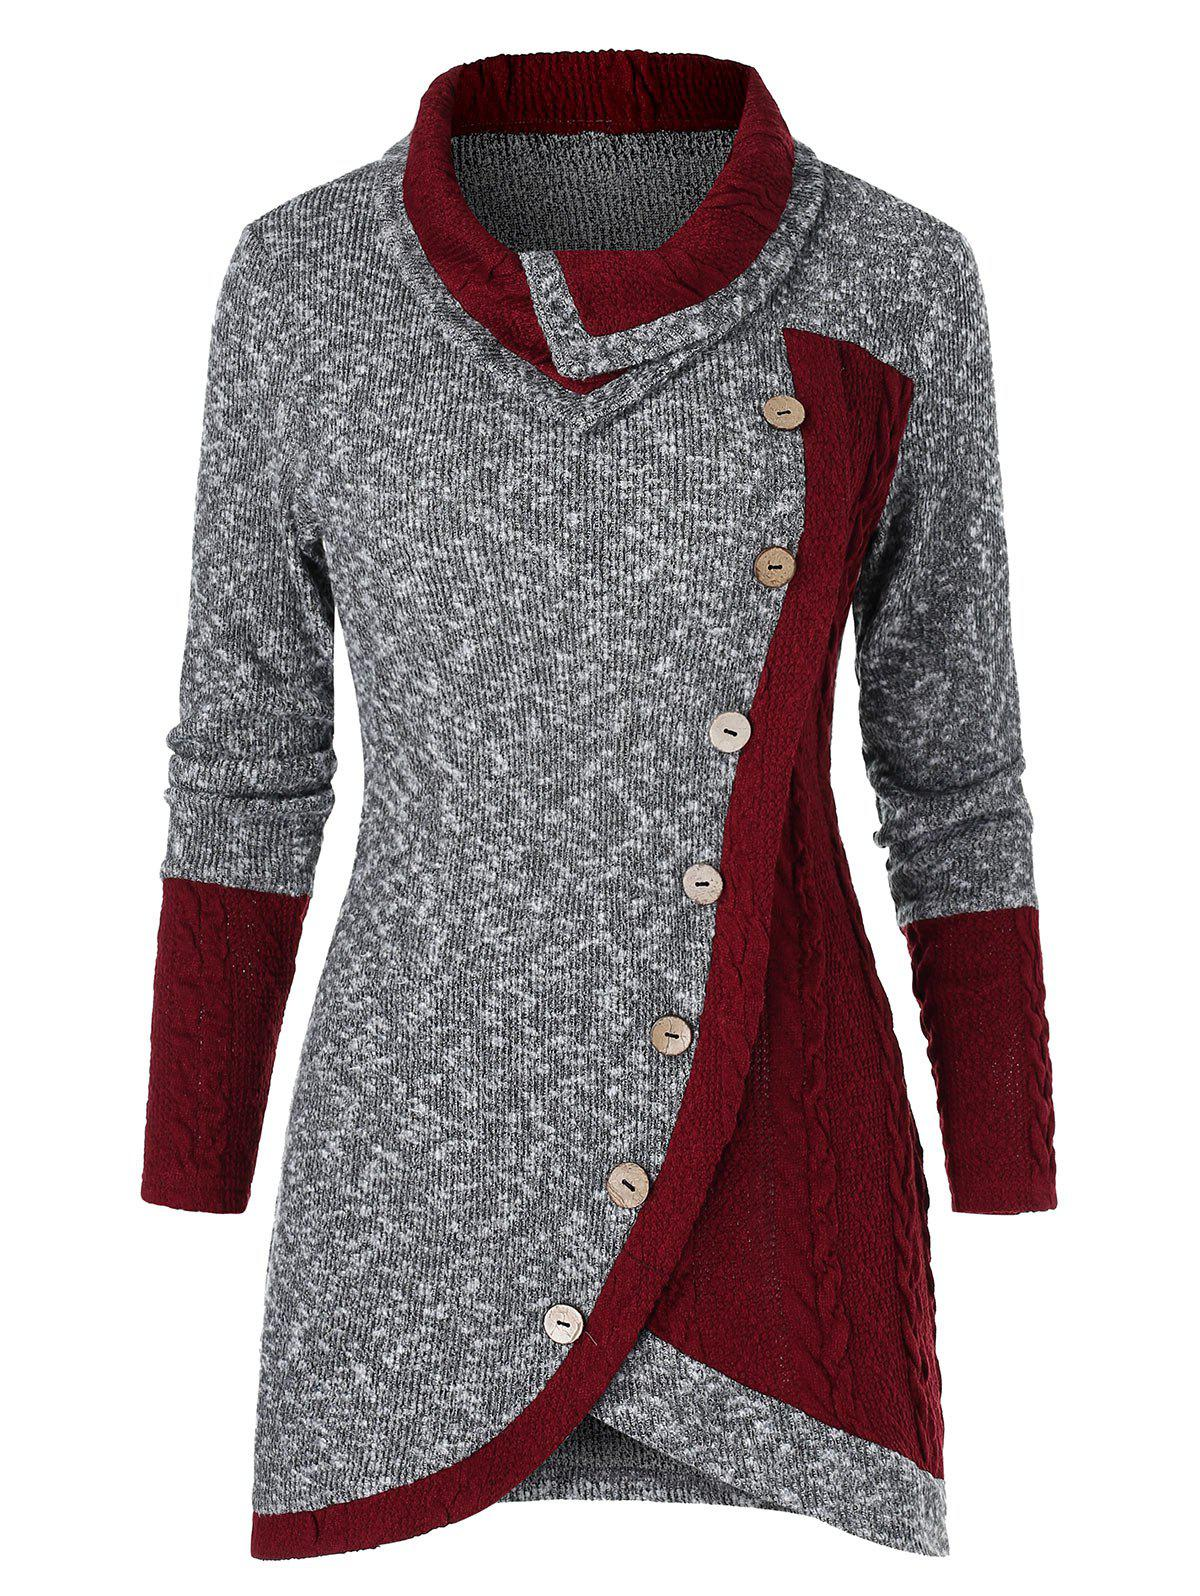 Contrast Tunic Turn-down Collar Sweater - multicolor A L